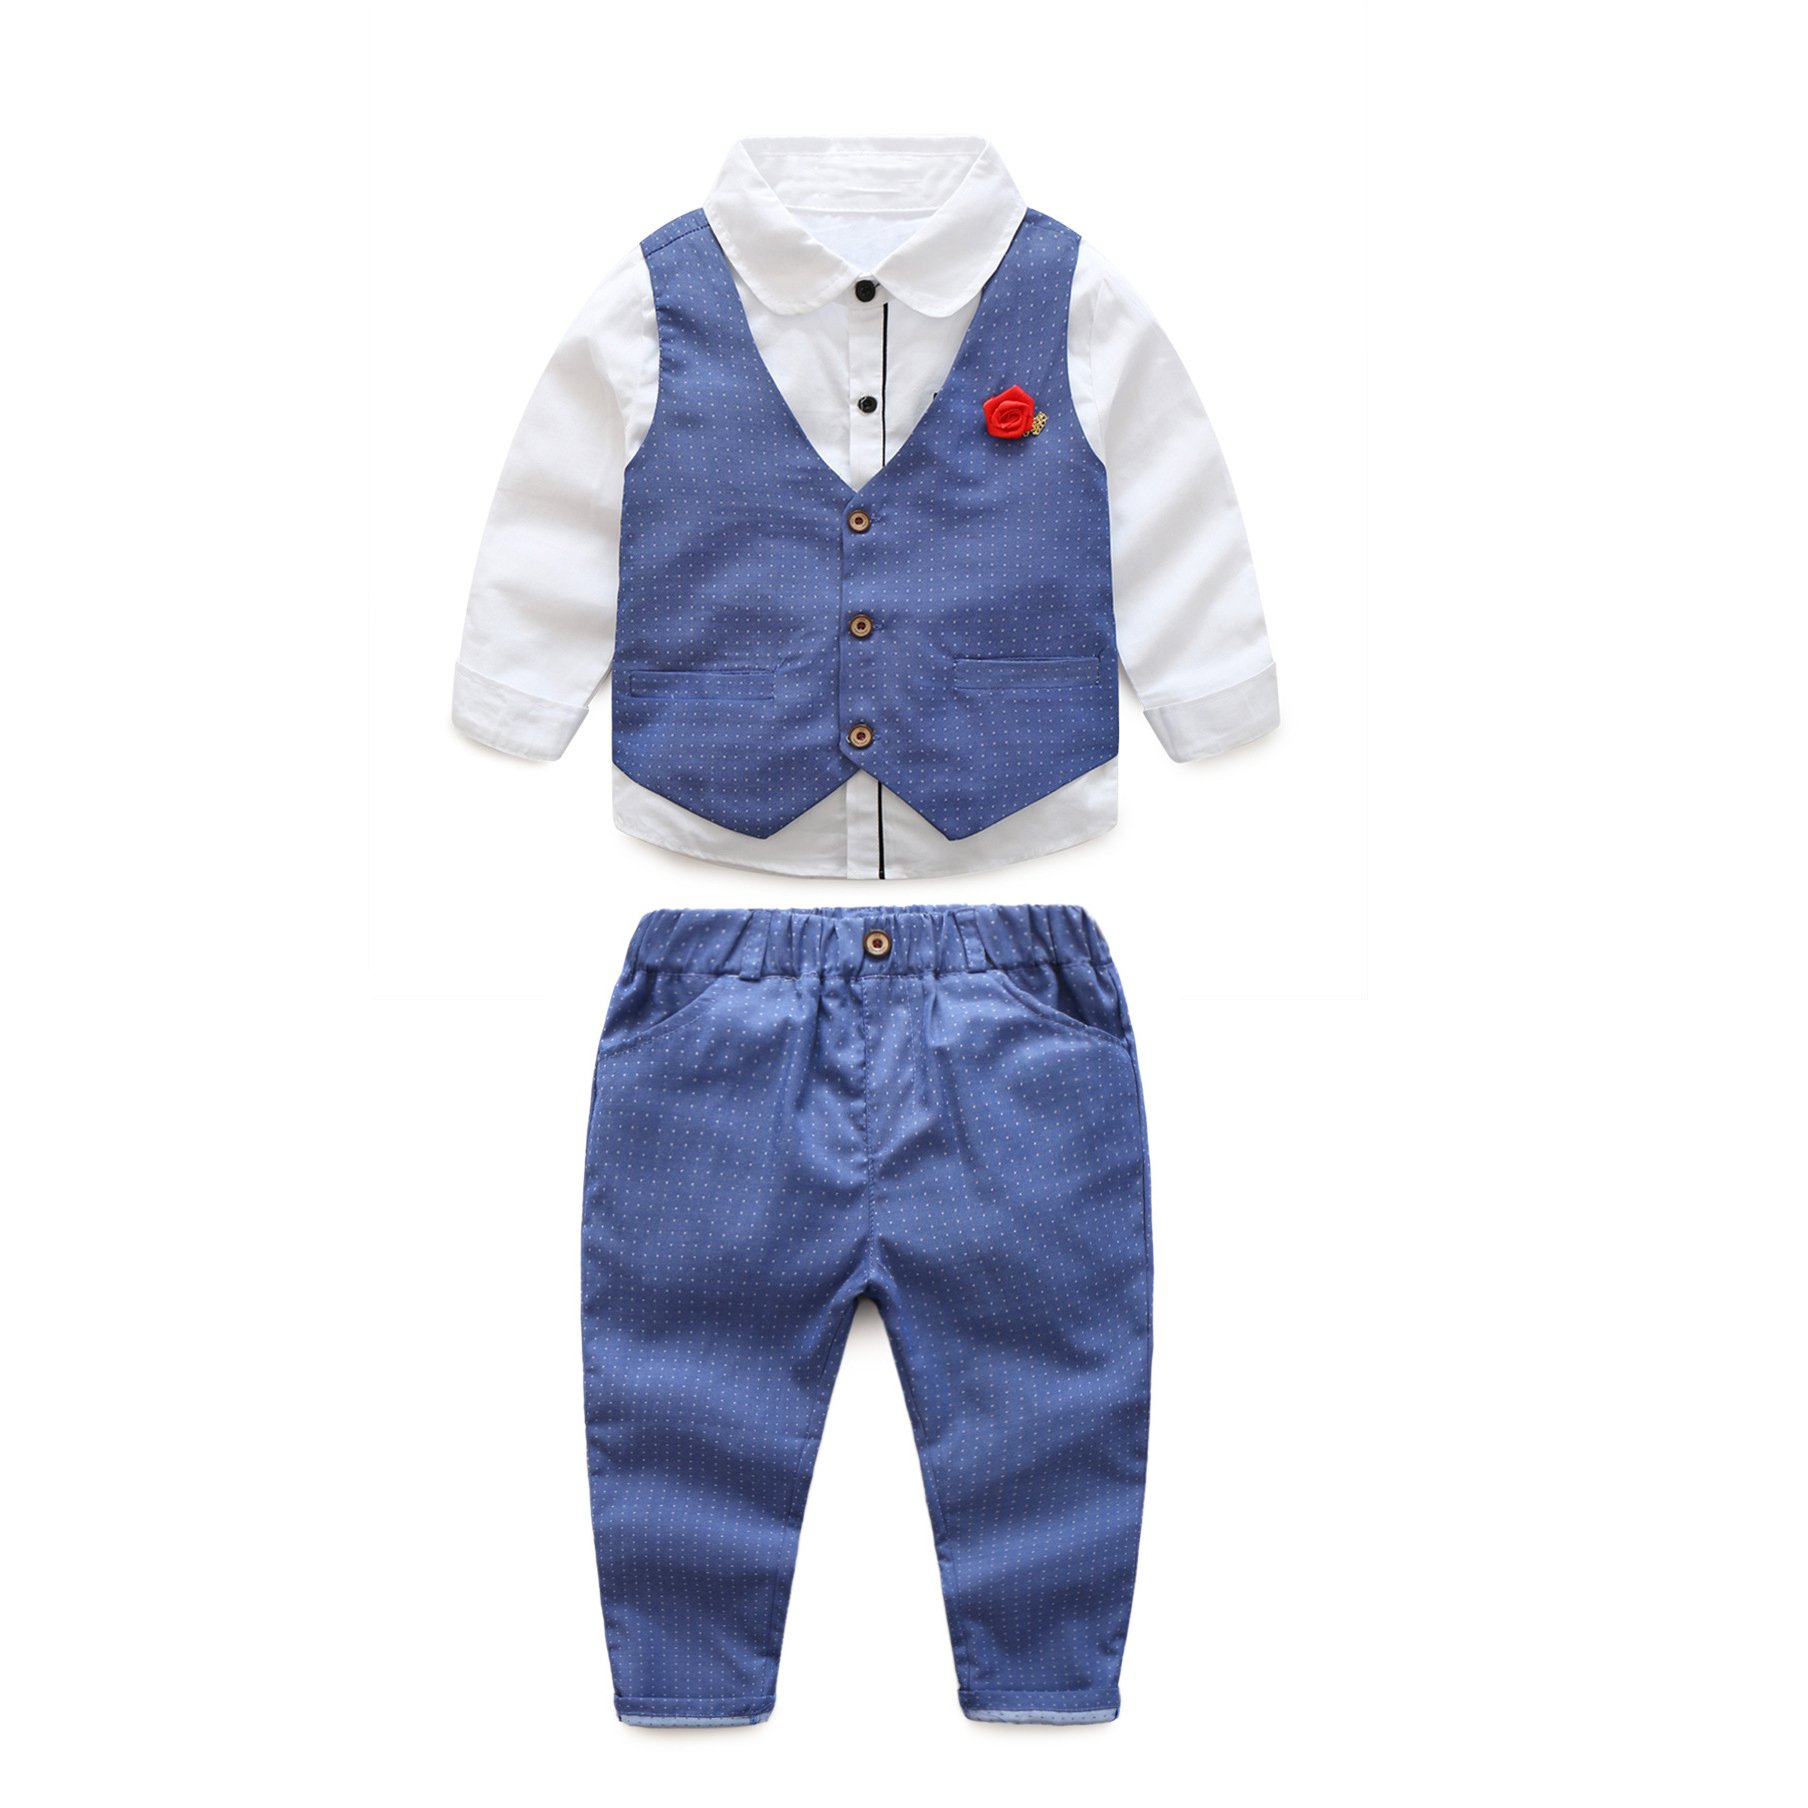 JIANLANPTT 3Pcs Little Kids Baby Boy's Gentelman Set Long Sleeve T-Shirt Tops Waistcoat Pants Blue 110